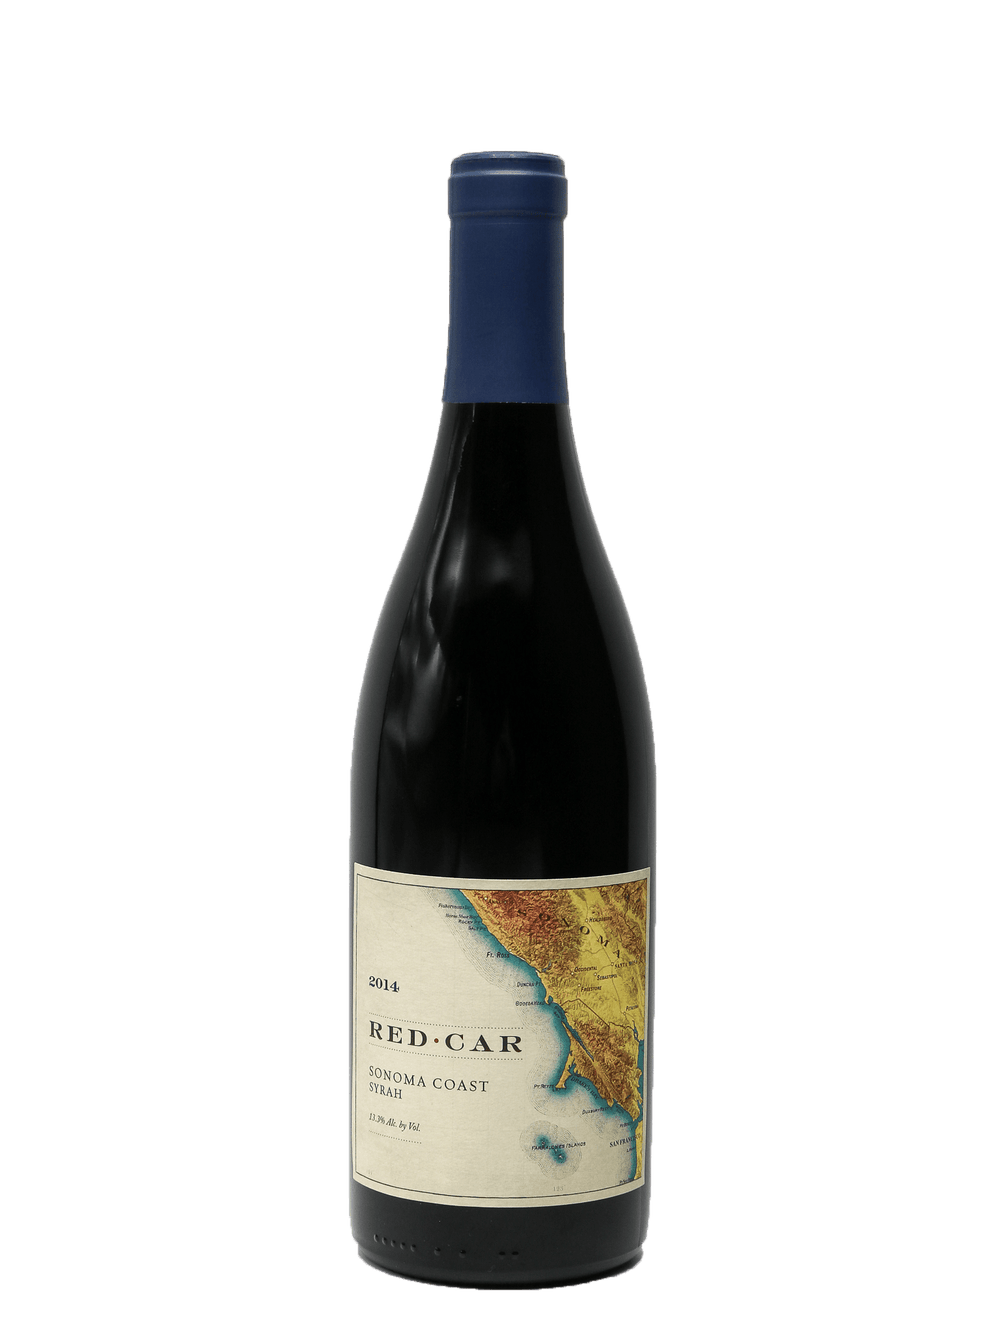 2014 Red Car Sonoma Coast Syrah